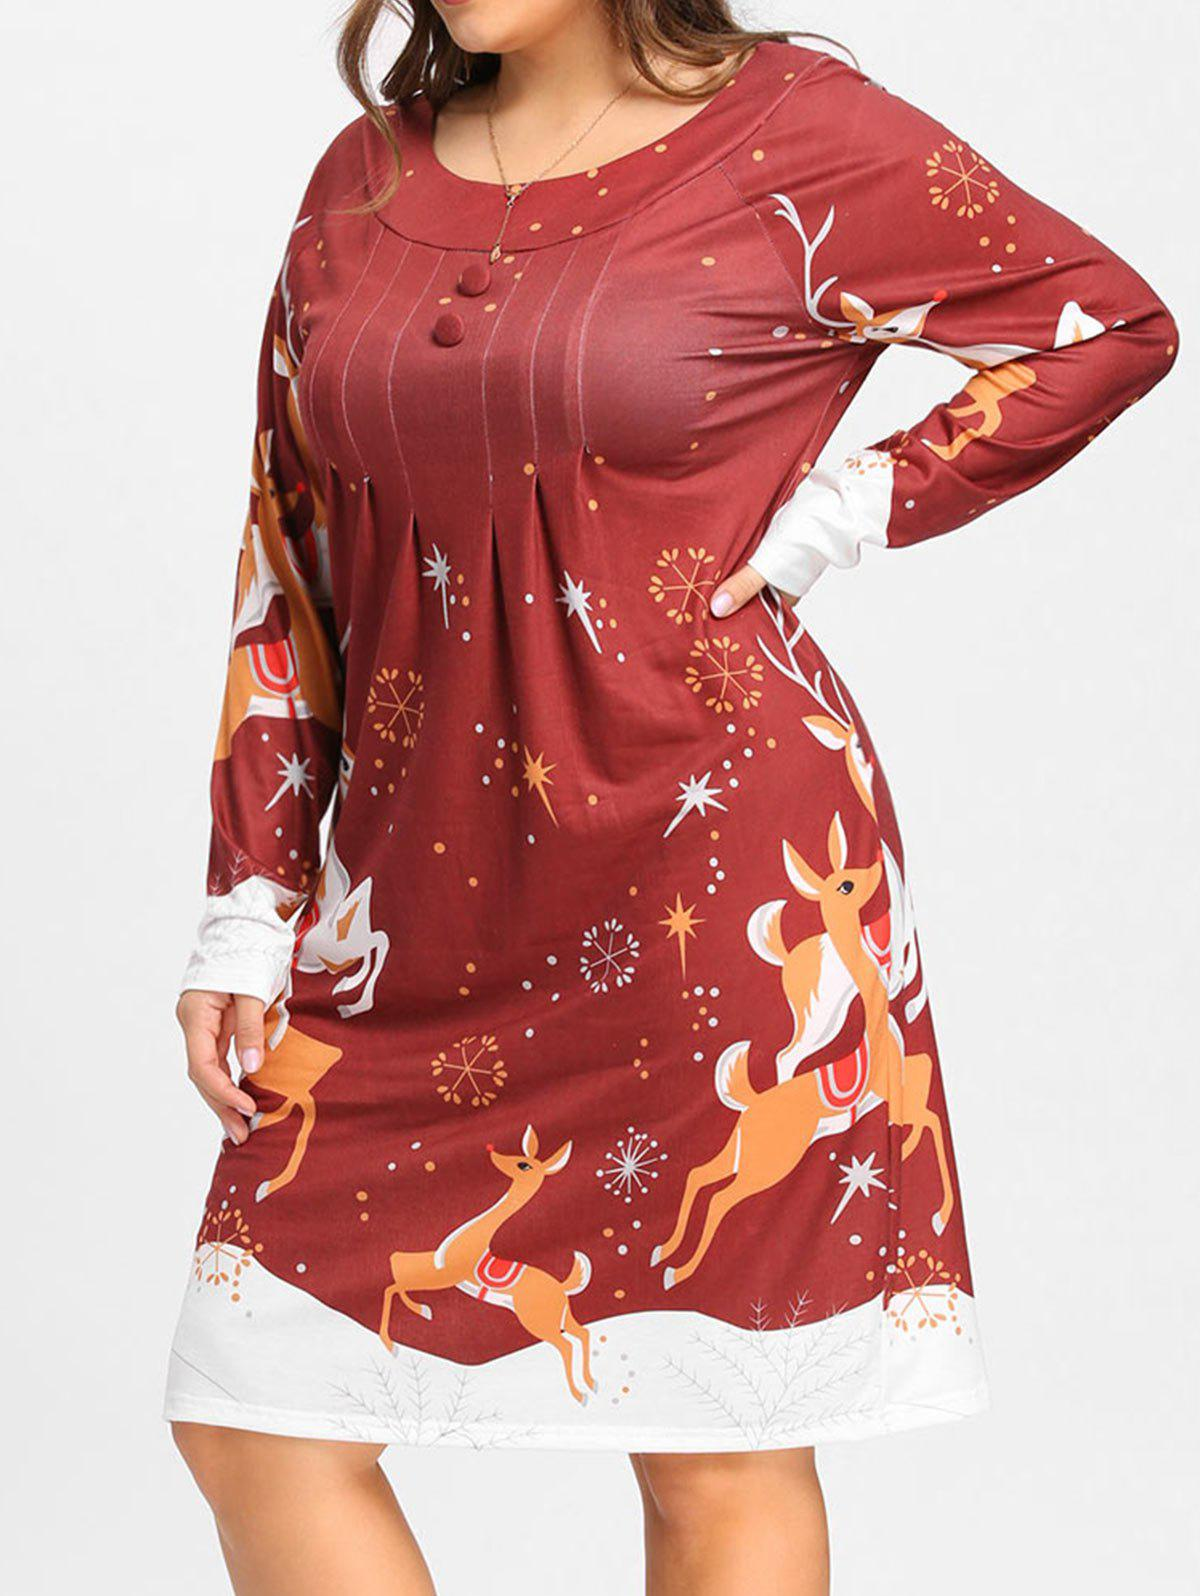 Christmas Elk Plus Size Long Sleeve Shirt DressWOMEN<br><br>Size: 4XL; Color: WINE RED; Style: Cute; Material: Polyester,Spandex; Silhouette: Straight; Dresses Length: Knee-Length; Neckline: Round Collar; Sleeve Length: Long Sleeves; Pattern Type: Others; With Belt: No; Season: Fall,Spring; Weight: 0.4100kg; Package Contents: 1 x Dress;